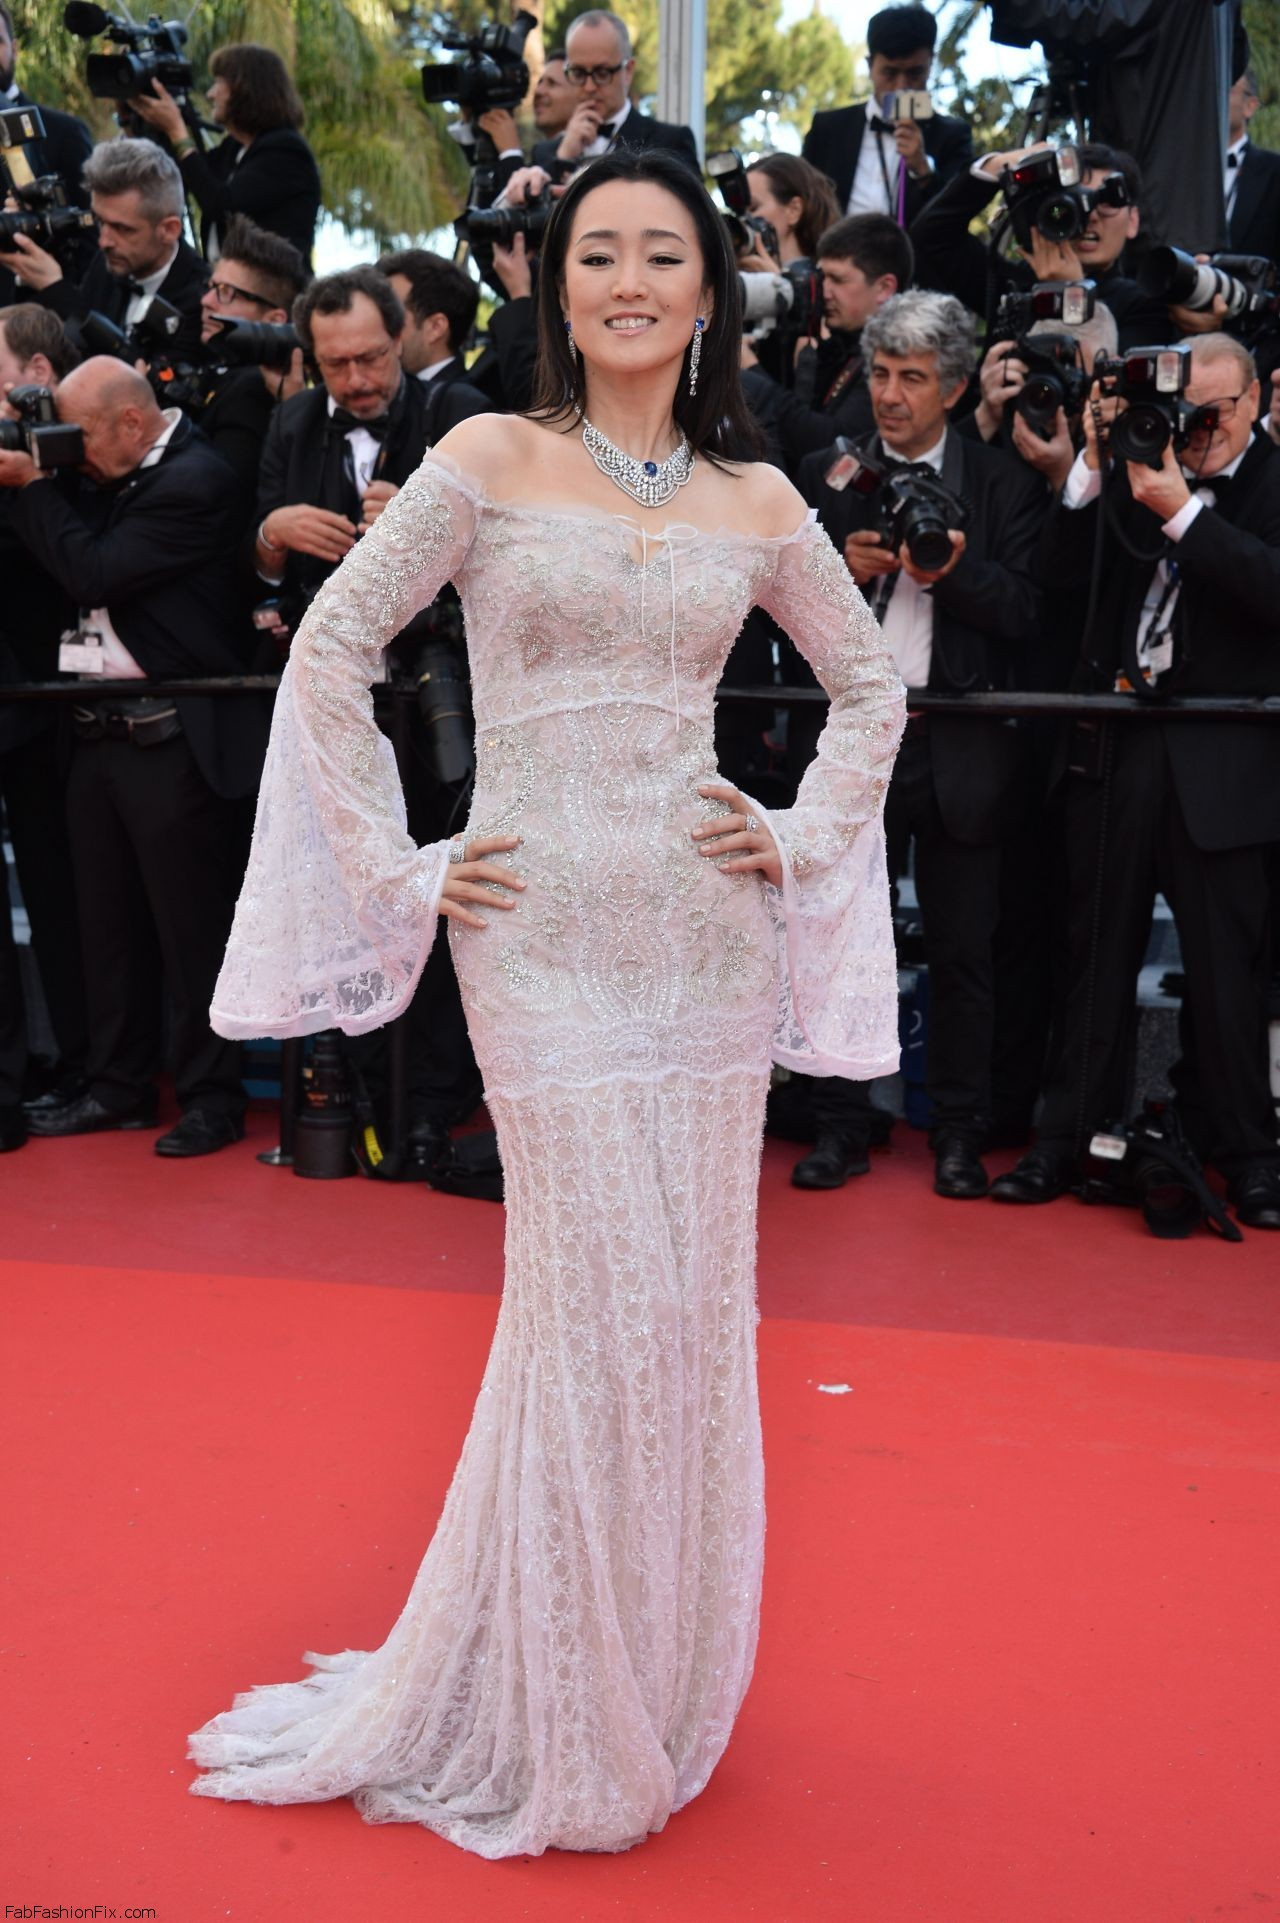 gong-li-cafe-society-premiere-and-the-opening-night-gala-2016-cannes-film-festival-1